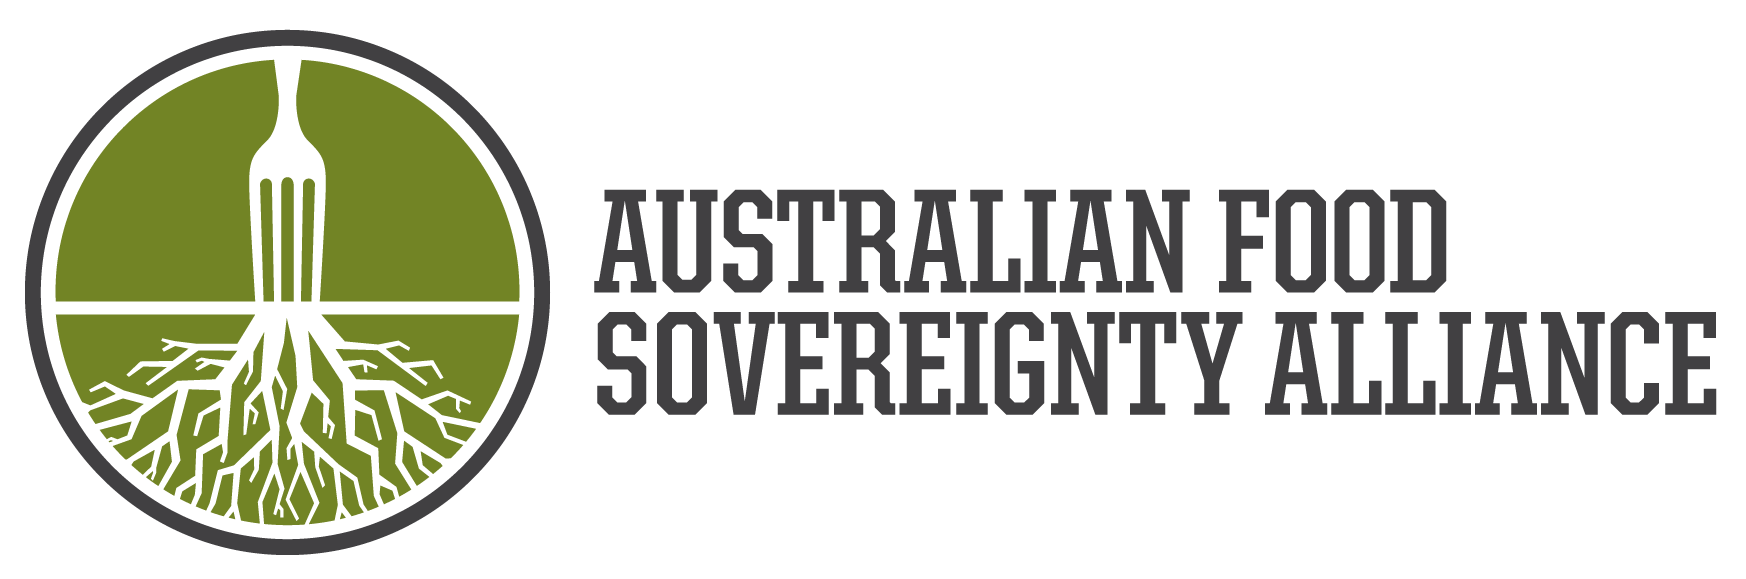 Image result for Australian food sovereignty alliance logo